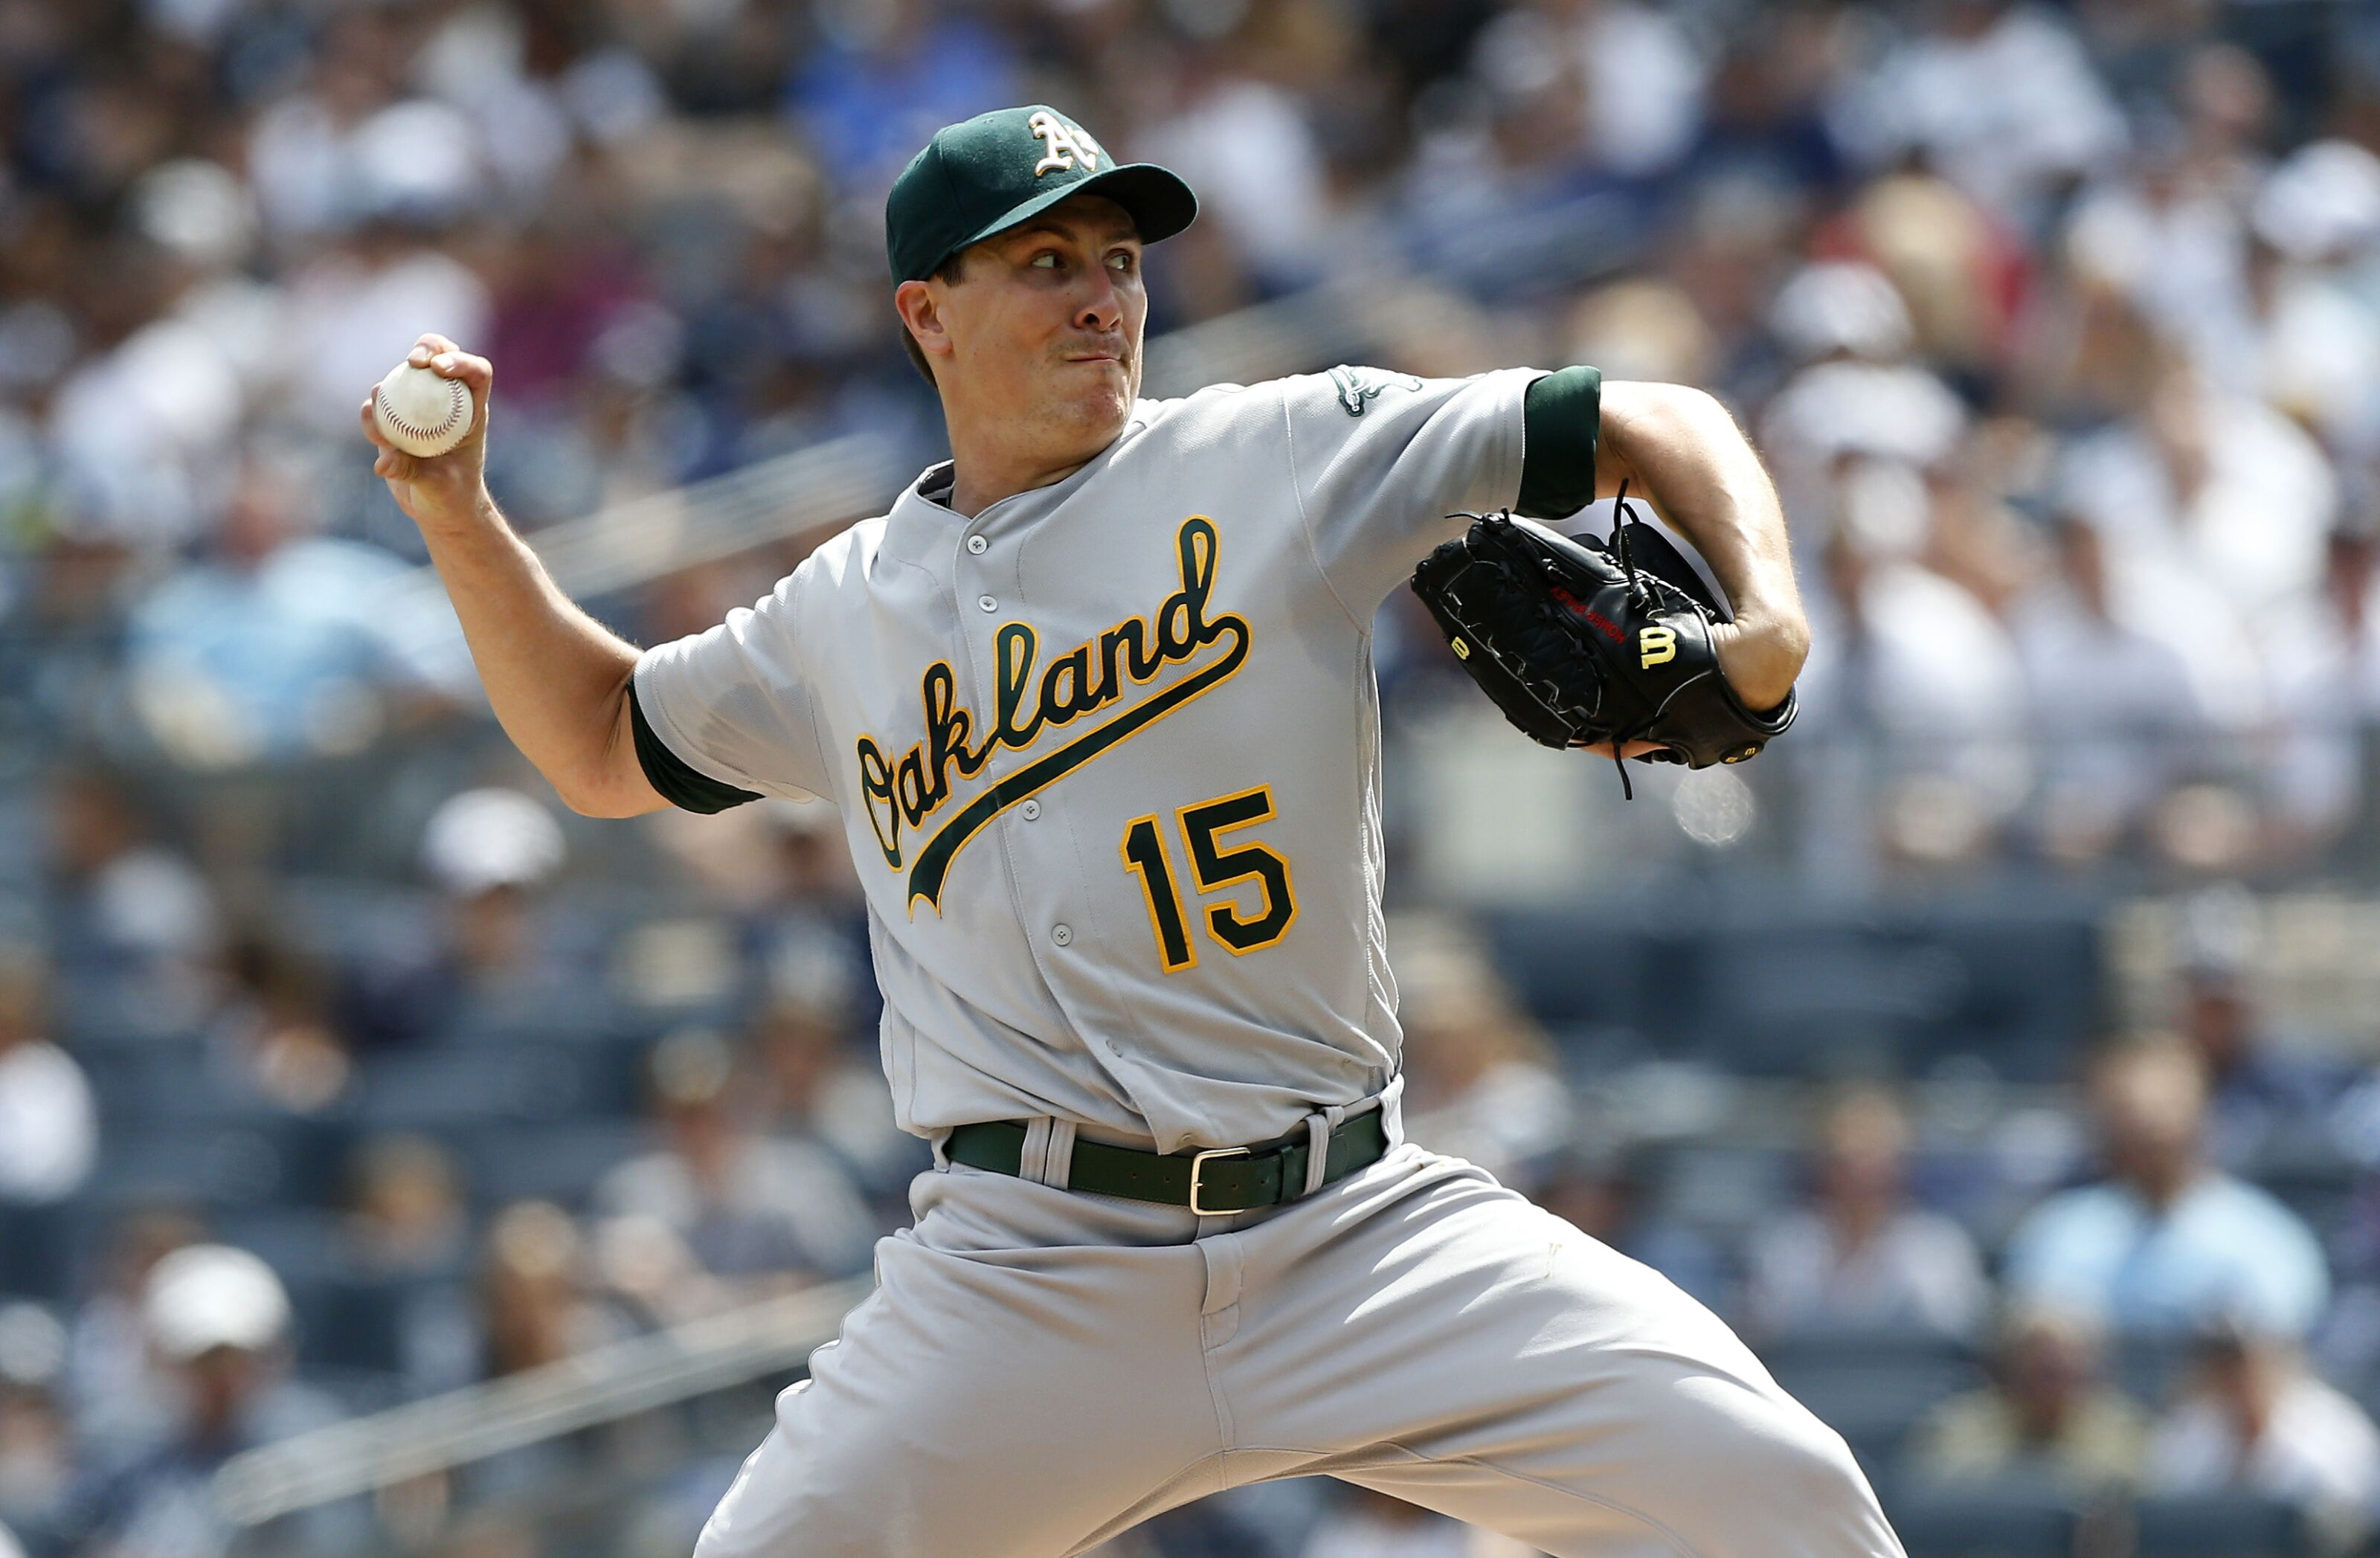 Minnesota Twins take a gamble by signing Homer Bailey and Rich Hill